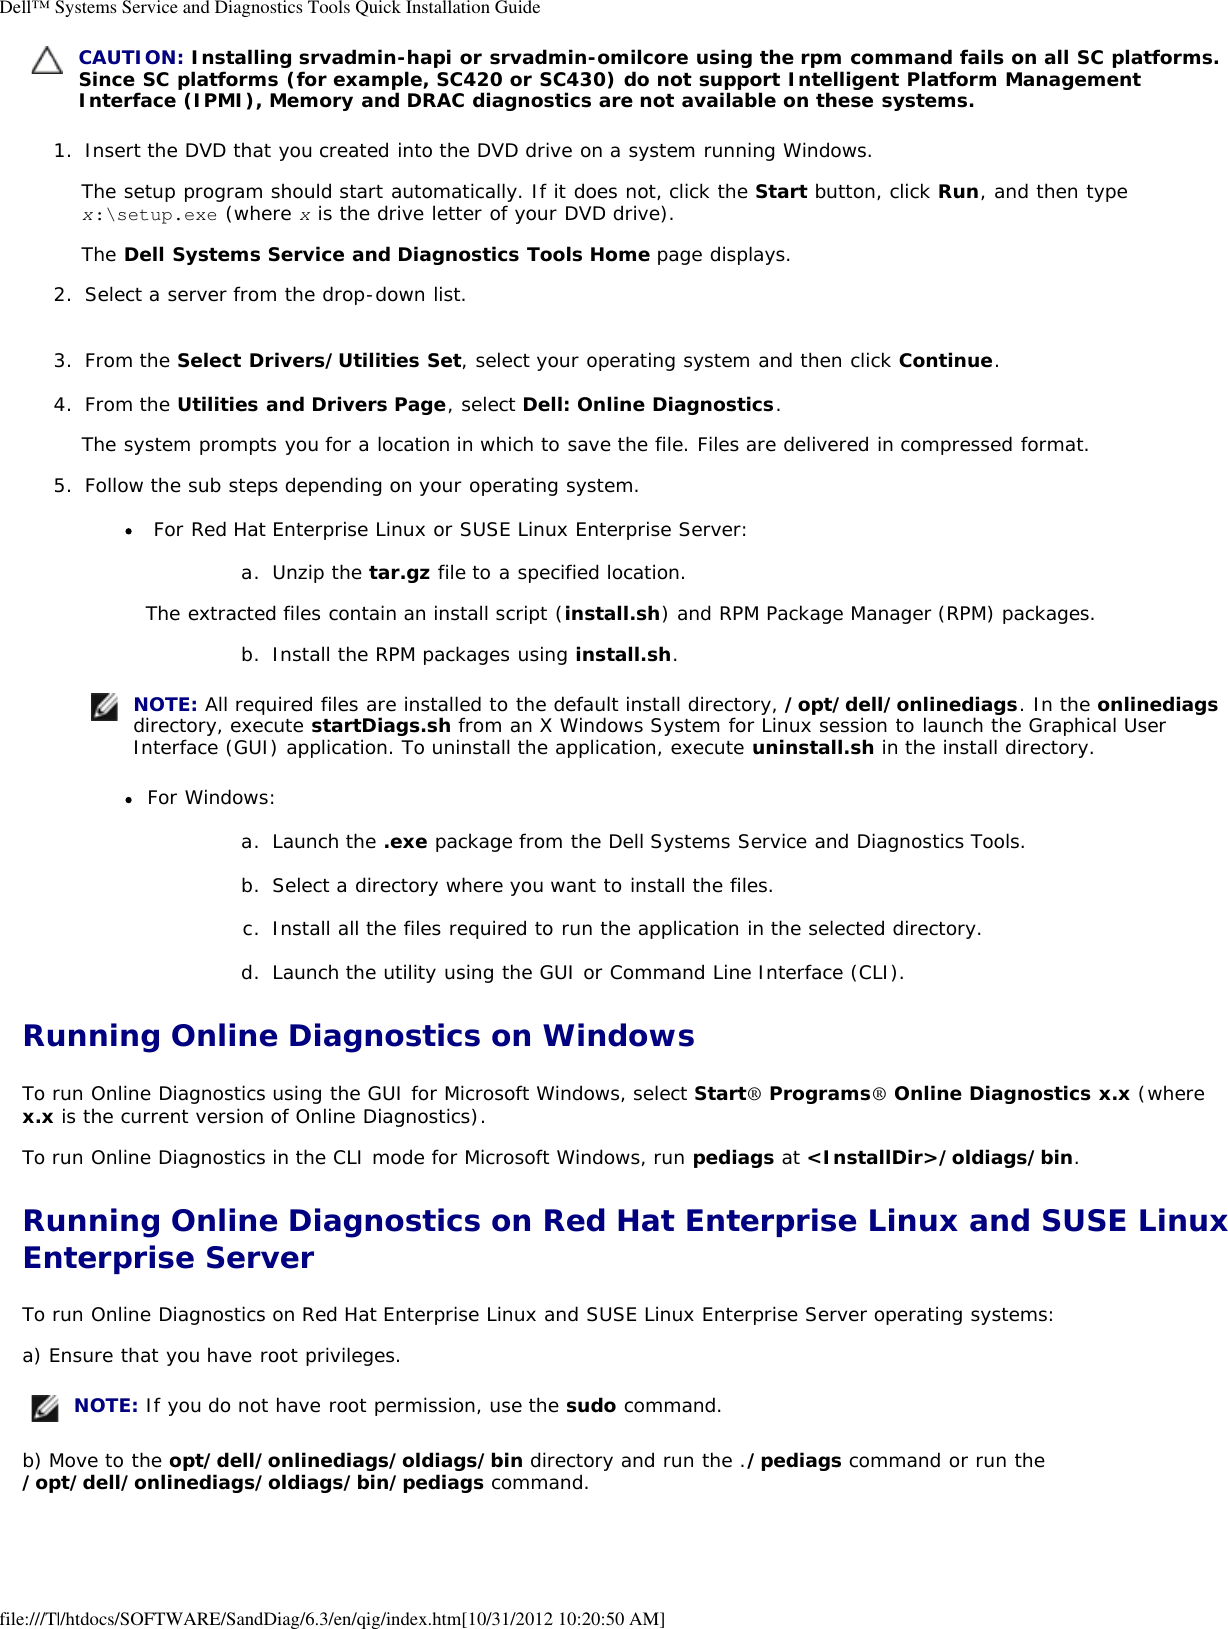 Dell System Services And Diagnostic Tools Version 6 3 Users